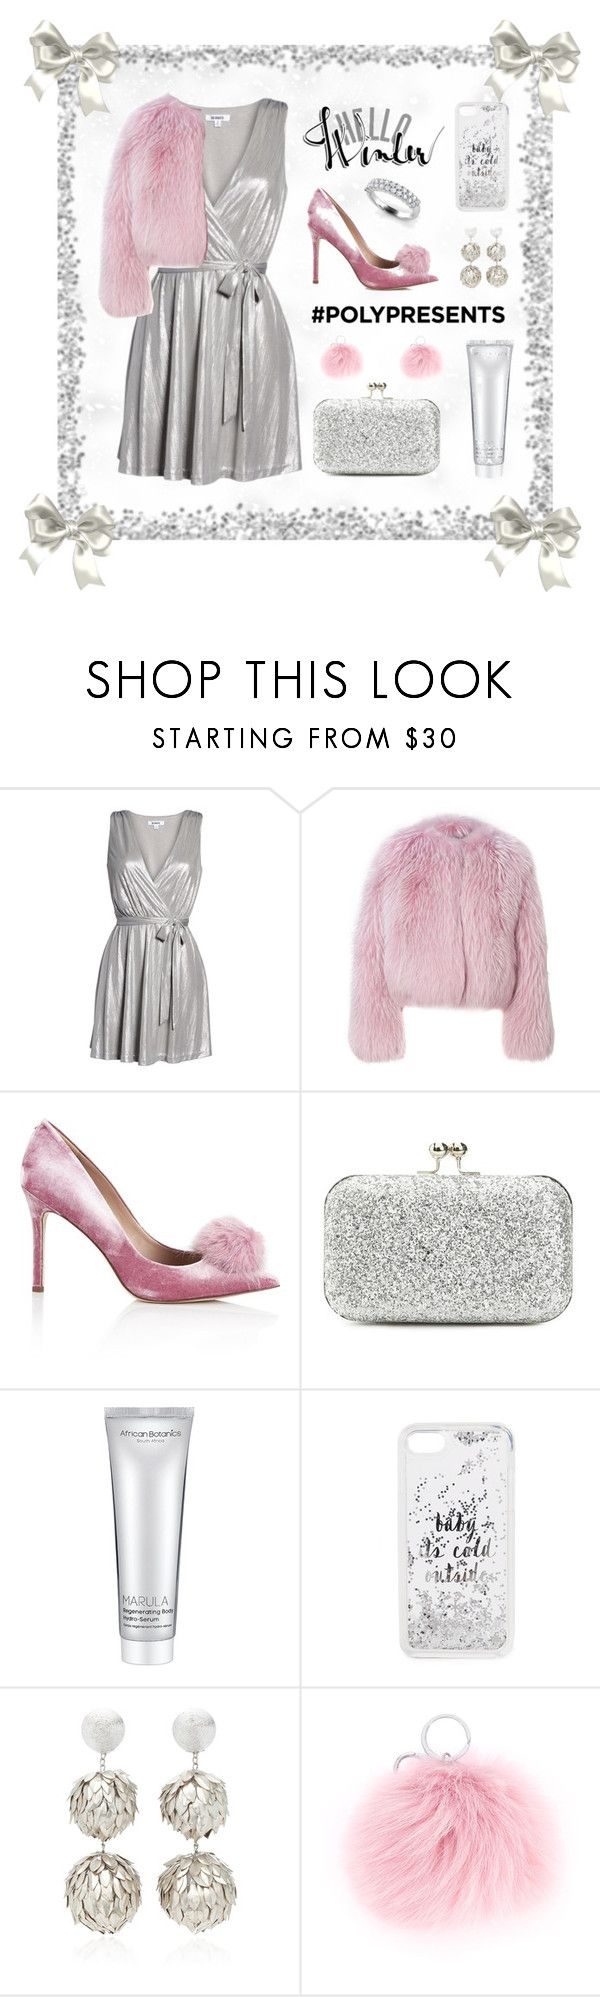 """#PolyPresents: Wish List"" by mariaangeles-g ❤ liked on Polyvore featuring BB Dakota, Sam Edelman, Lulu Townsend, African Botanics, Kate Spade, Rebecca de Ravenel, CITYSHOP, contestentry and polyPresents"